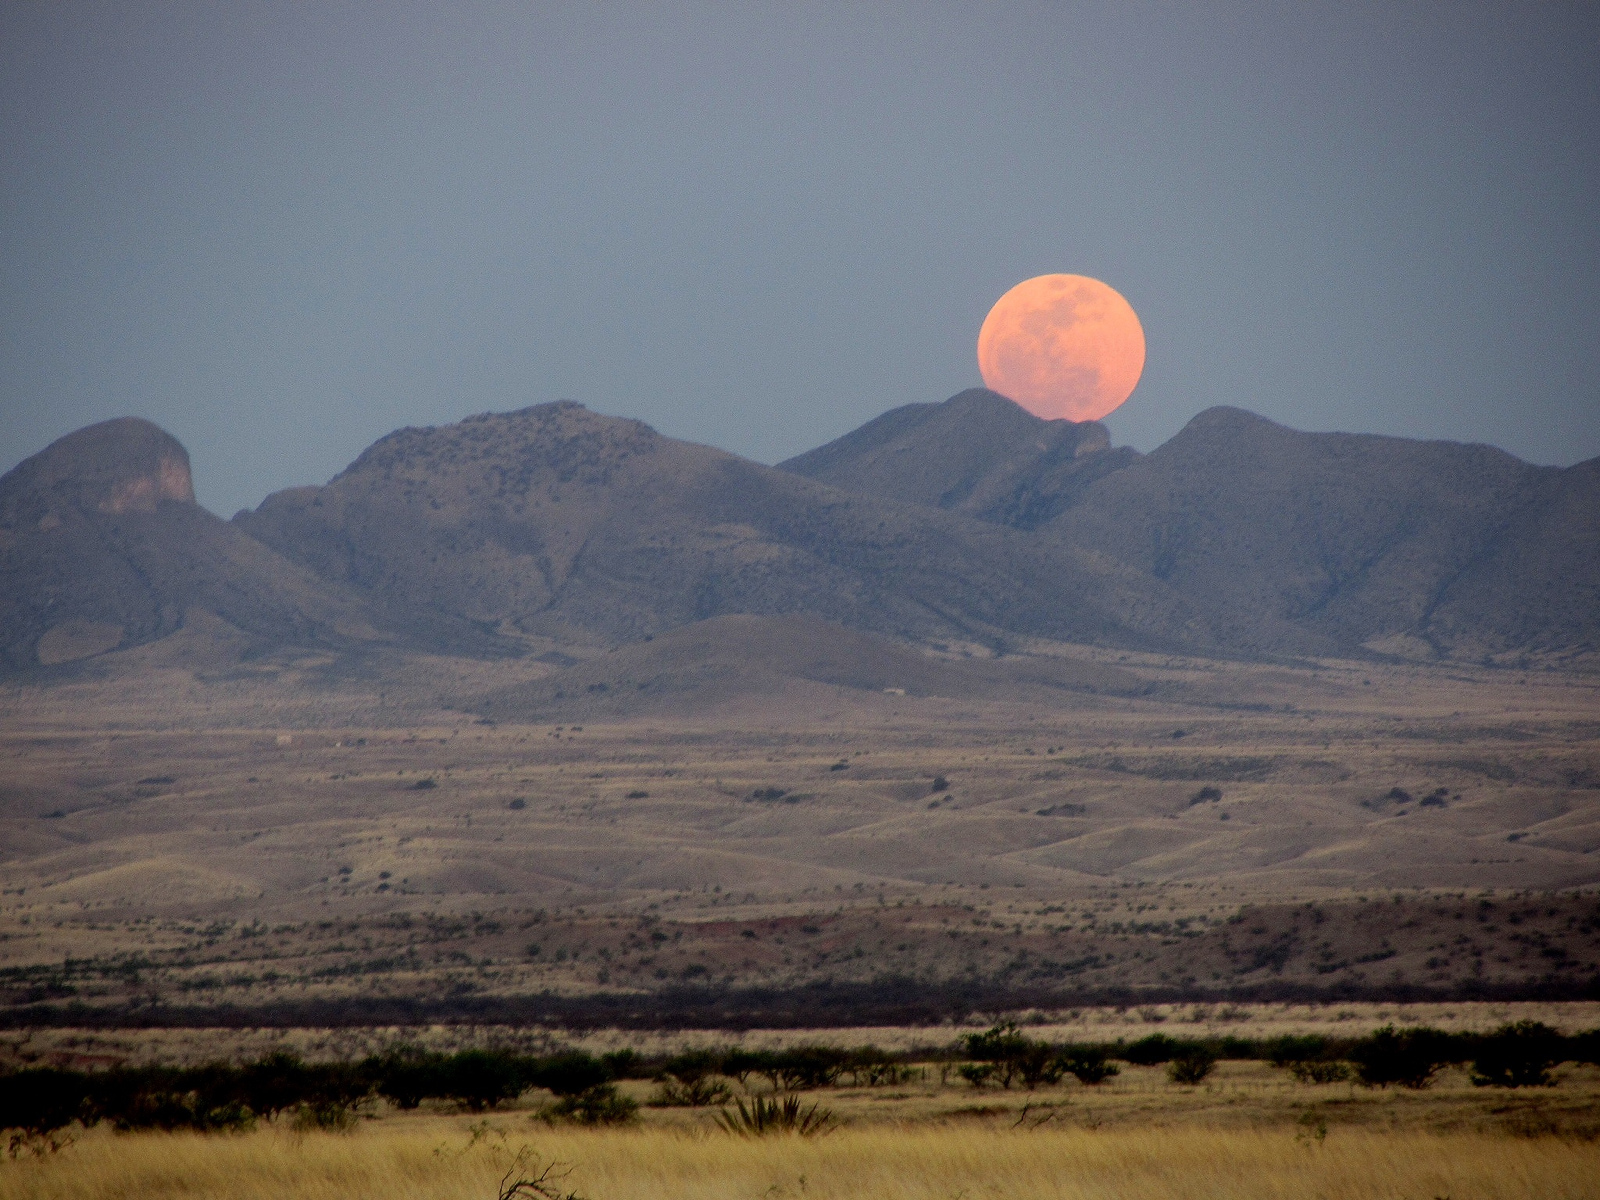 A supermoon over Arizona in 2012, inferior in every way to the supermoon happening Nov. 13, 2016. (Ken Bosma/Flickr)